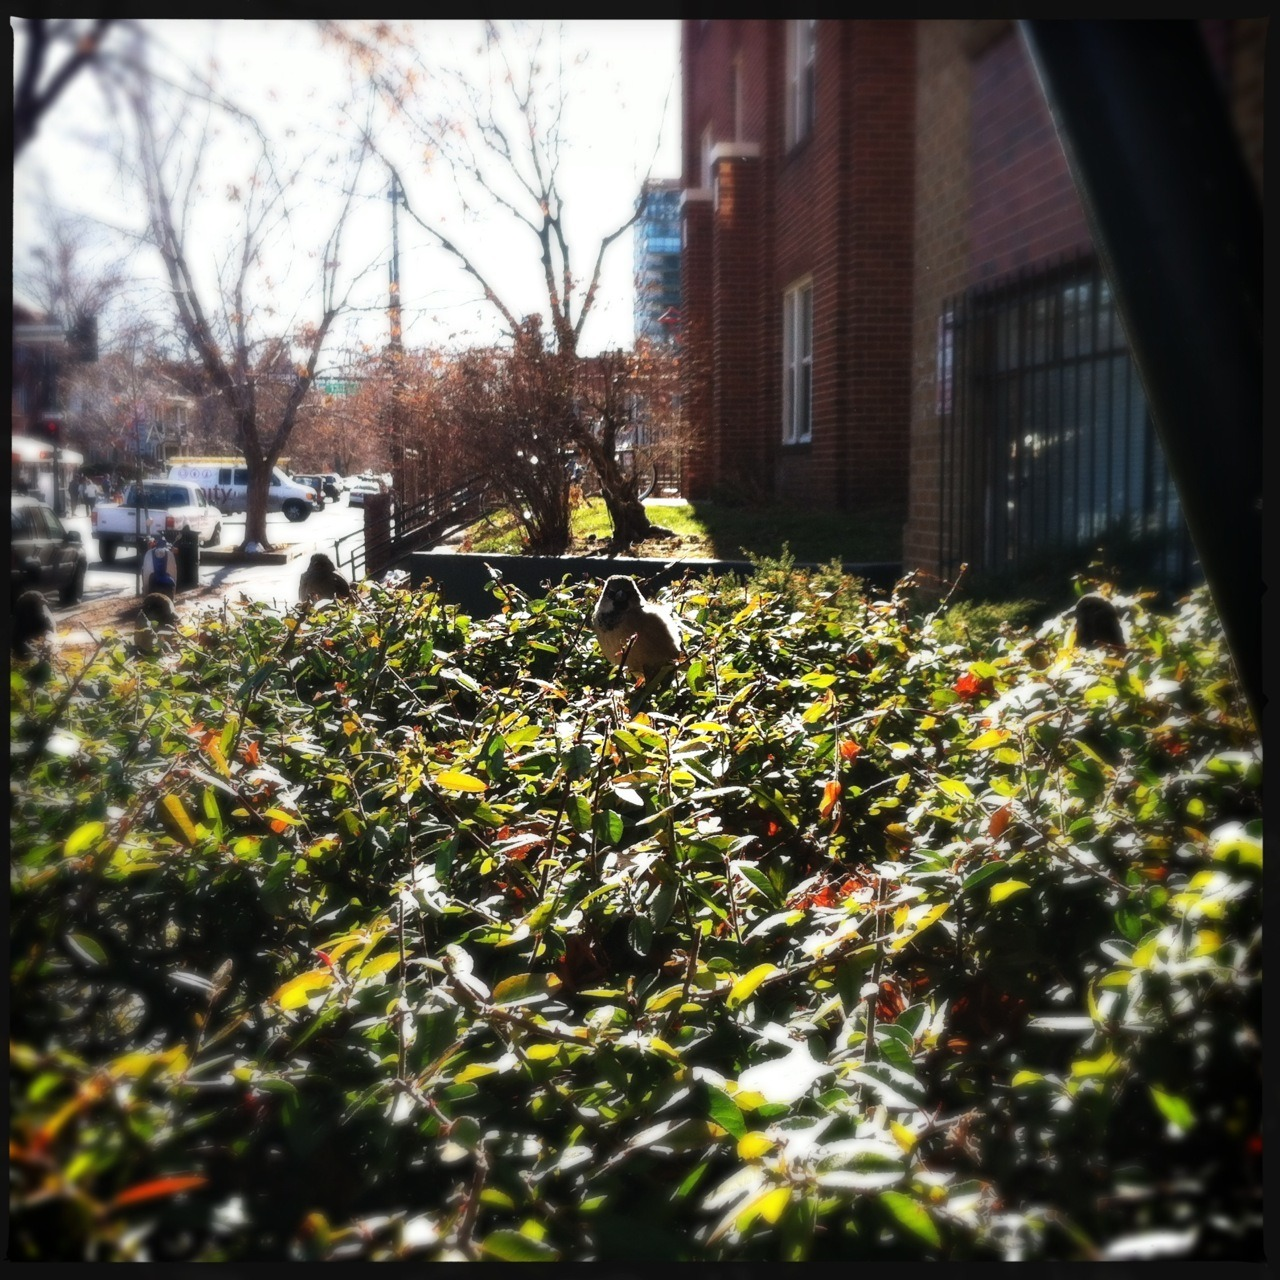 Birds in the Bush Taken with Hipstamatic, Loftus Lens, DC Film, No Flash.